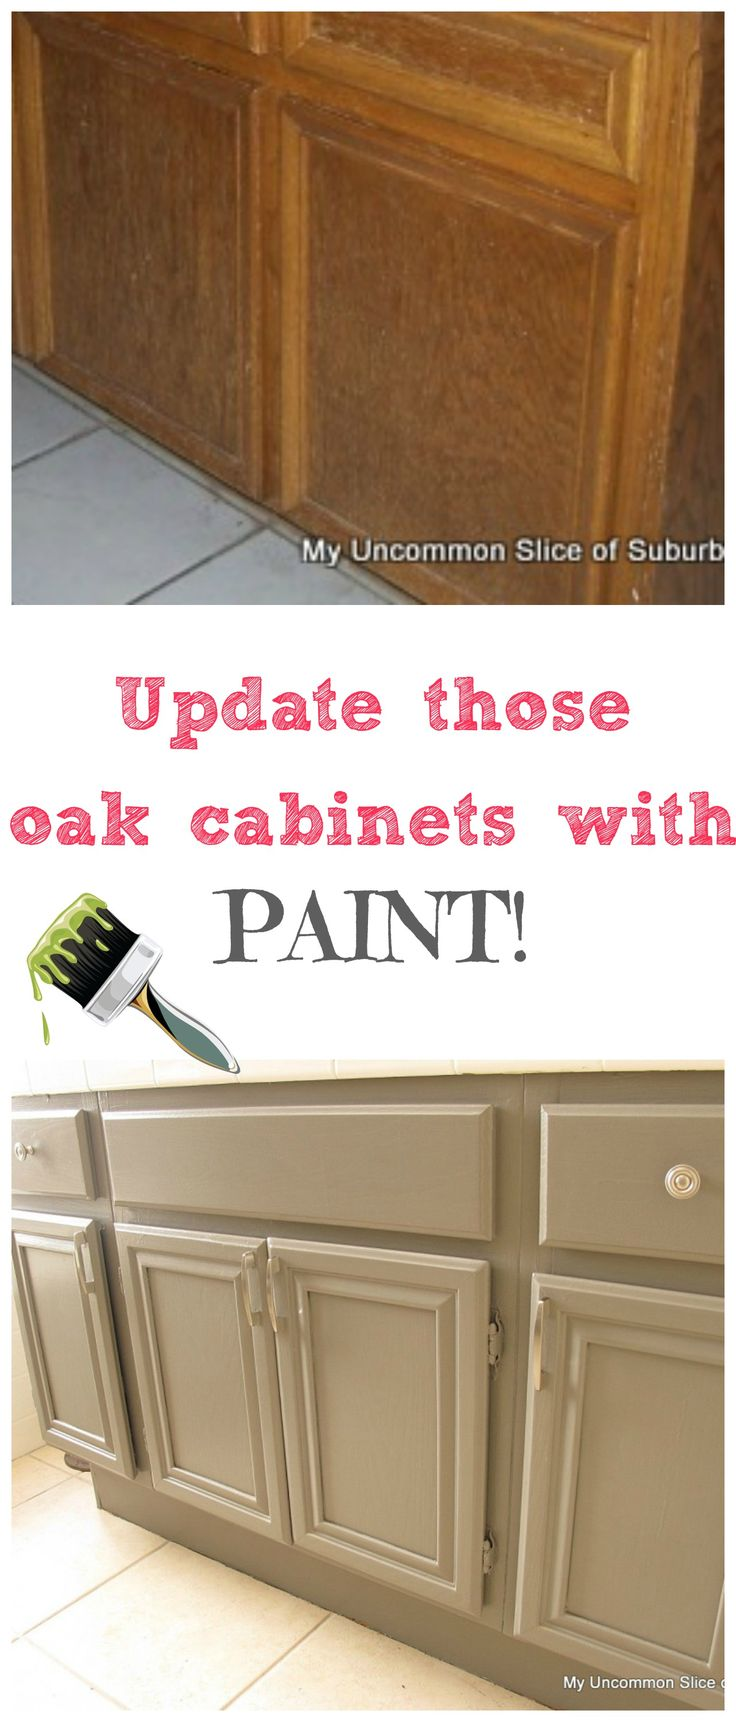 Can i use kitchen cabinets in the bathroom - How To Paint Oak Cabinets